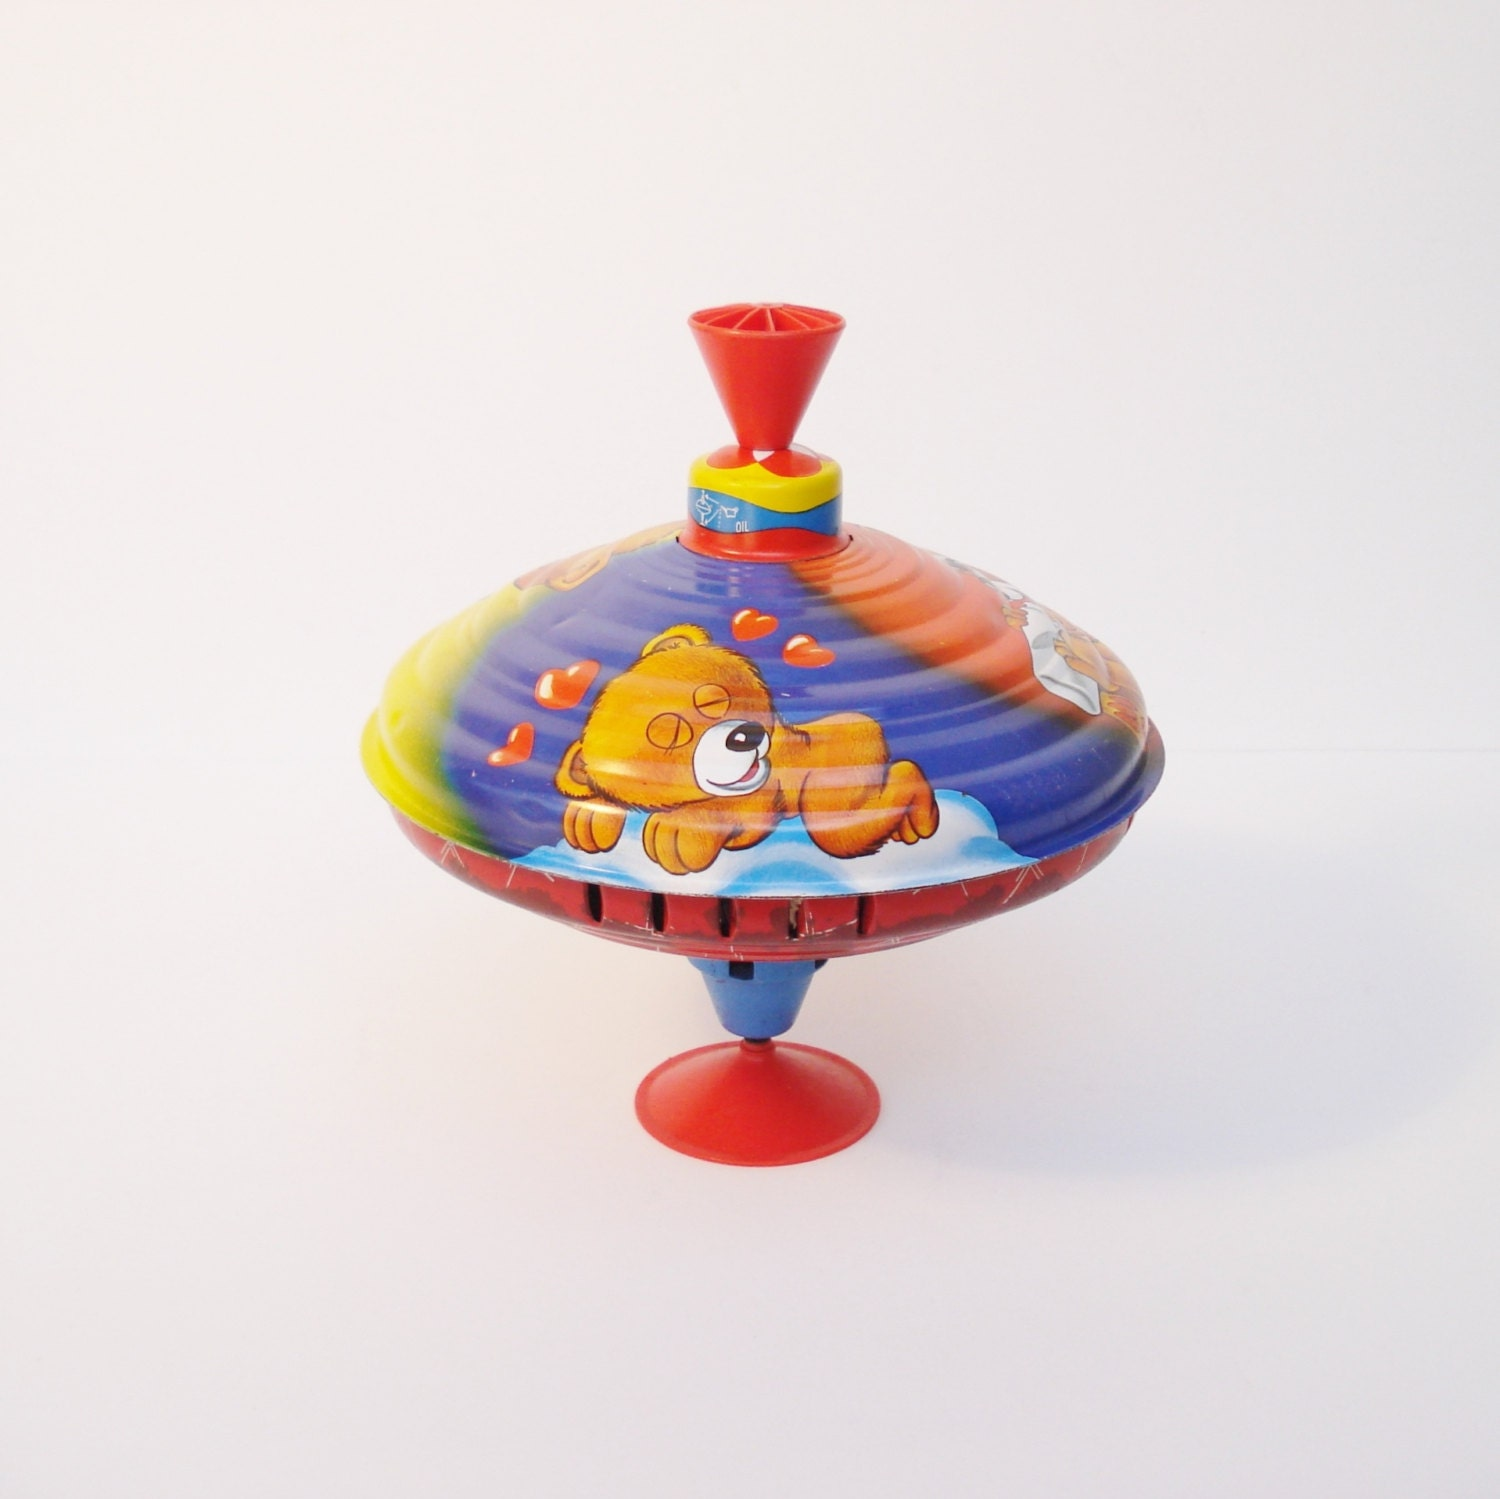 Vintage Metal Spinning Top Spinning Top Toy Spinning Toy